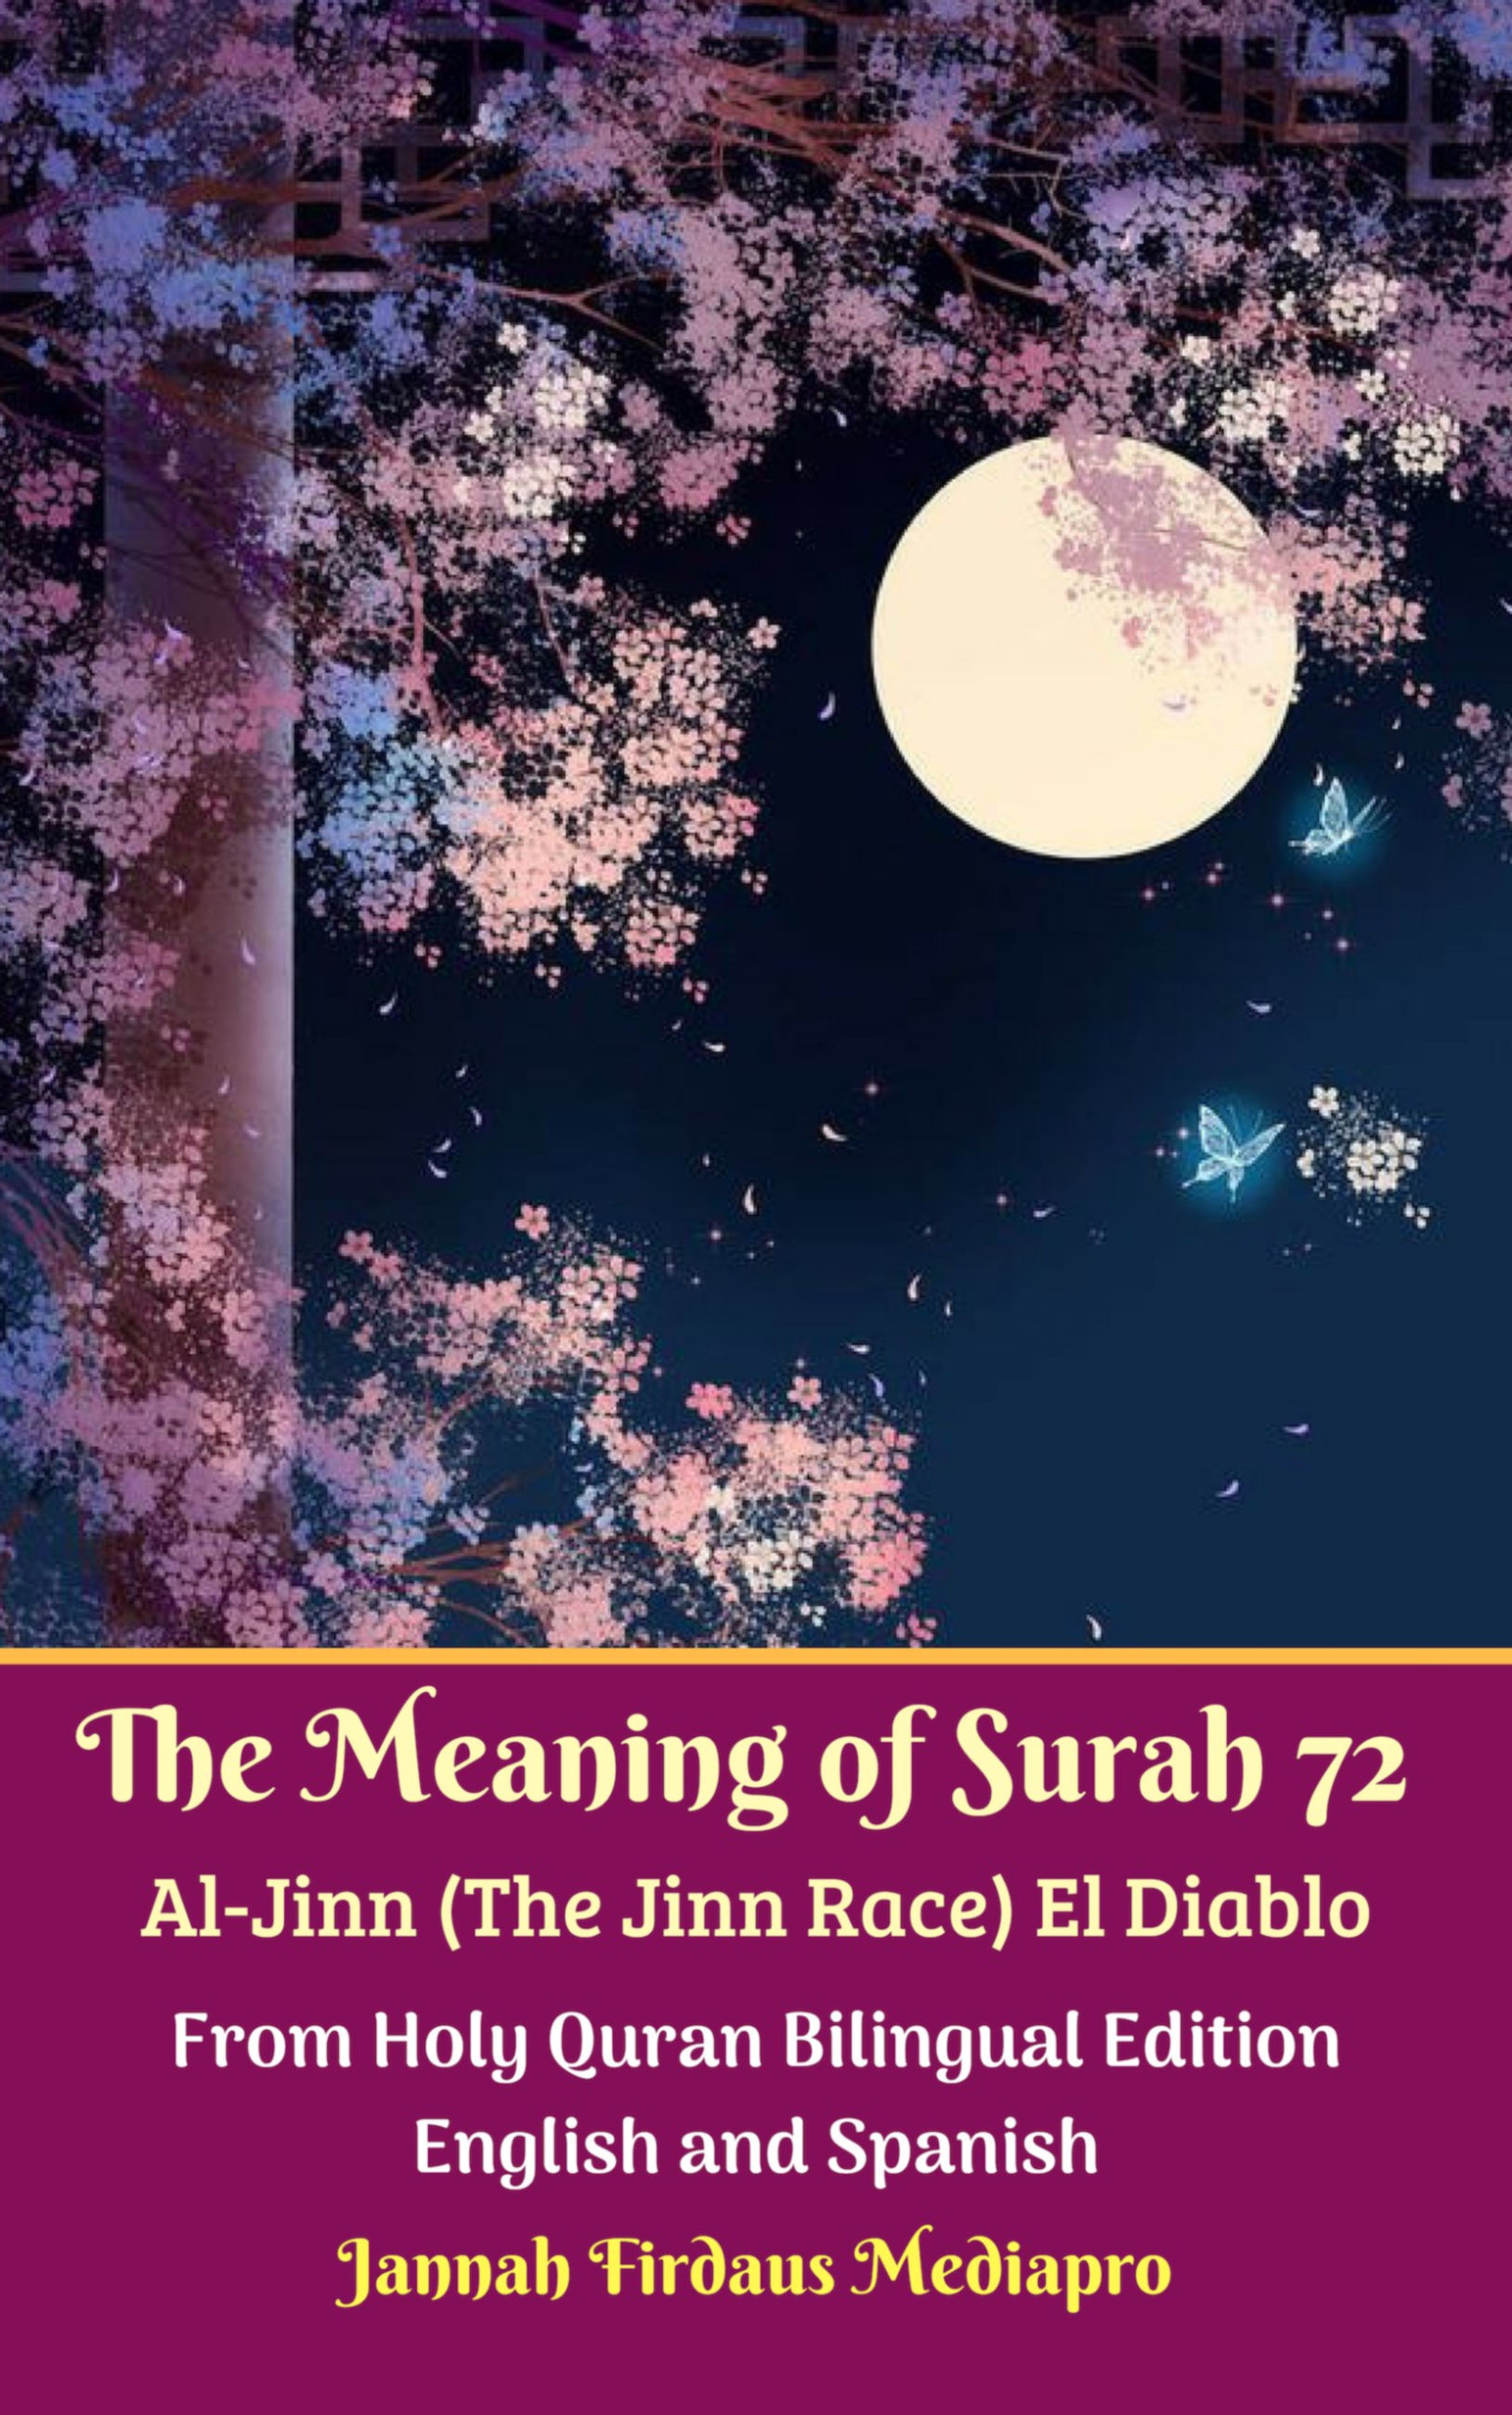 The Meaning of Surah 72 Al-Jinn (The Jinn Race) El Diablo From Holy Quran  Bilingual Edition English and Spanish, an Ebook by Jannah Firdaus Mediapro